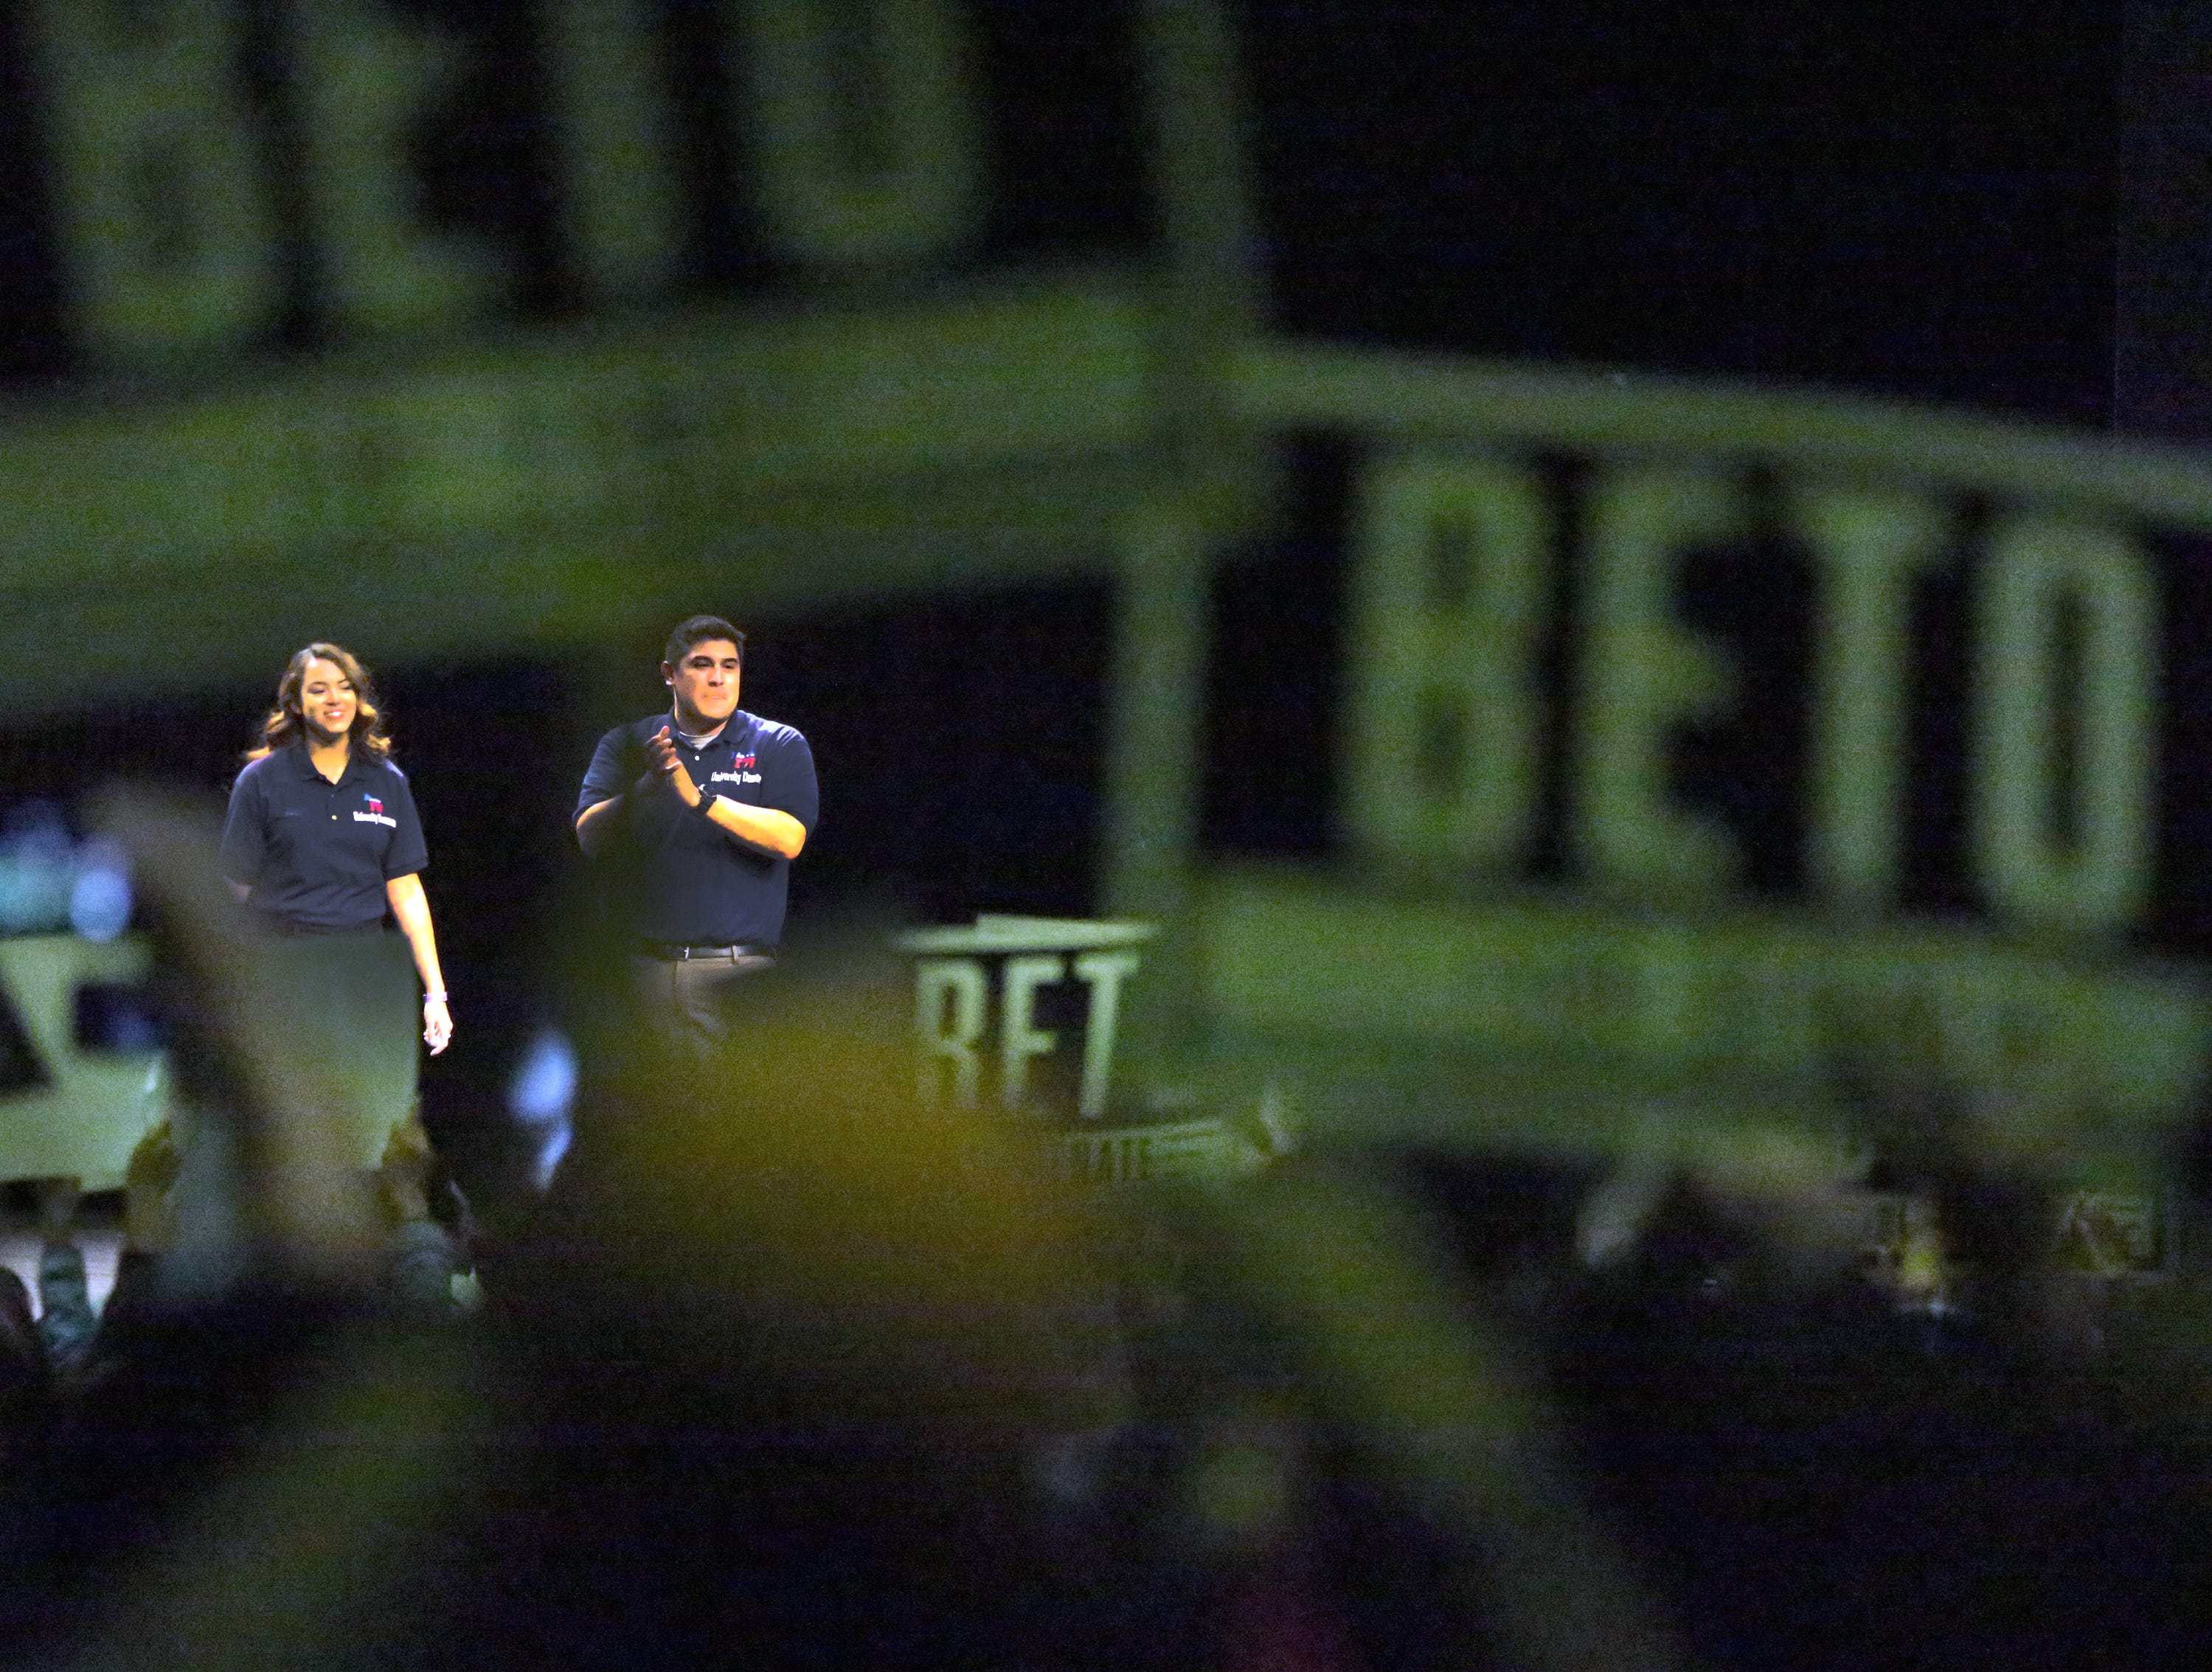 Two supporters on stage welcome Democratic U.S. Senate candidate Beto O'Rourke into Magoffin Auditorium on the UTEP campus Monday night.